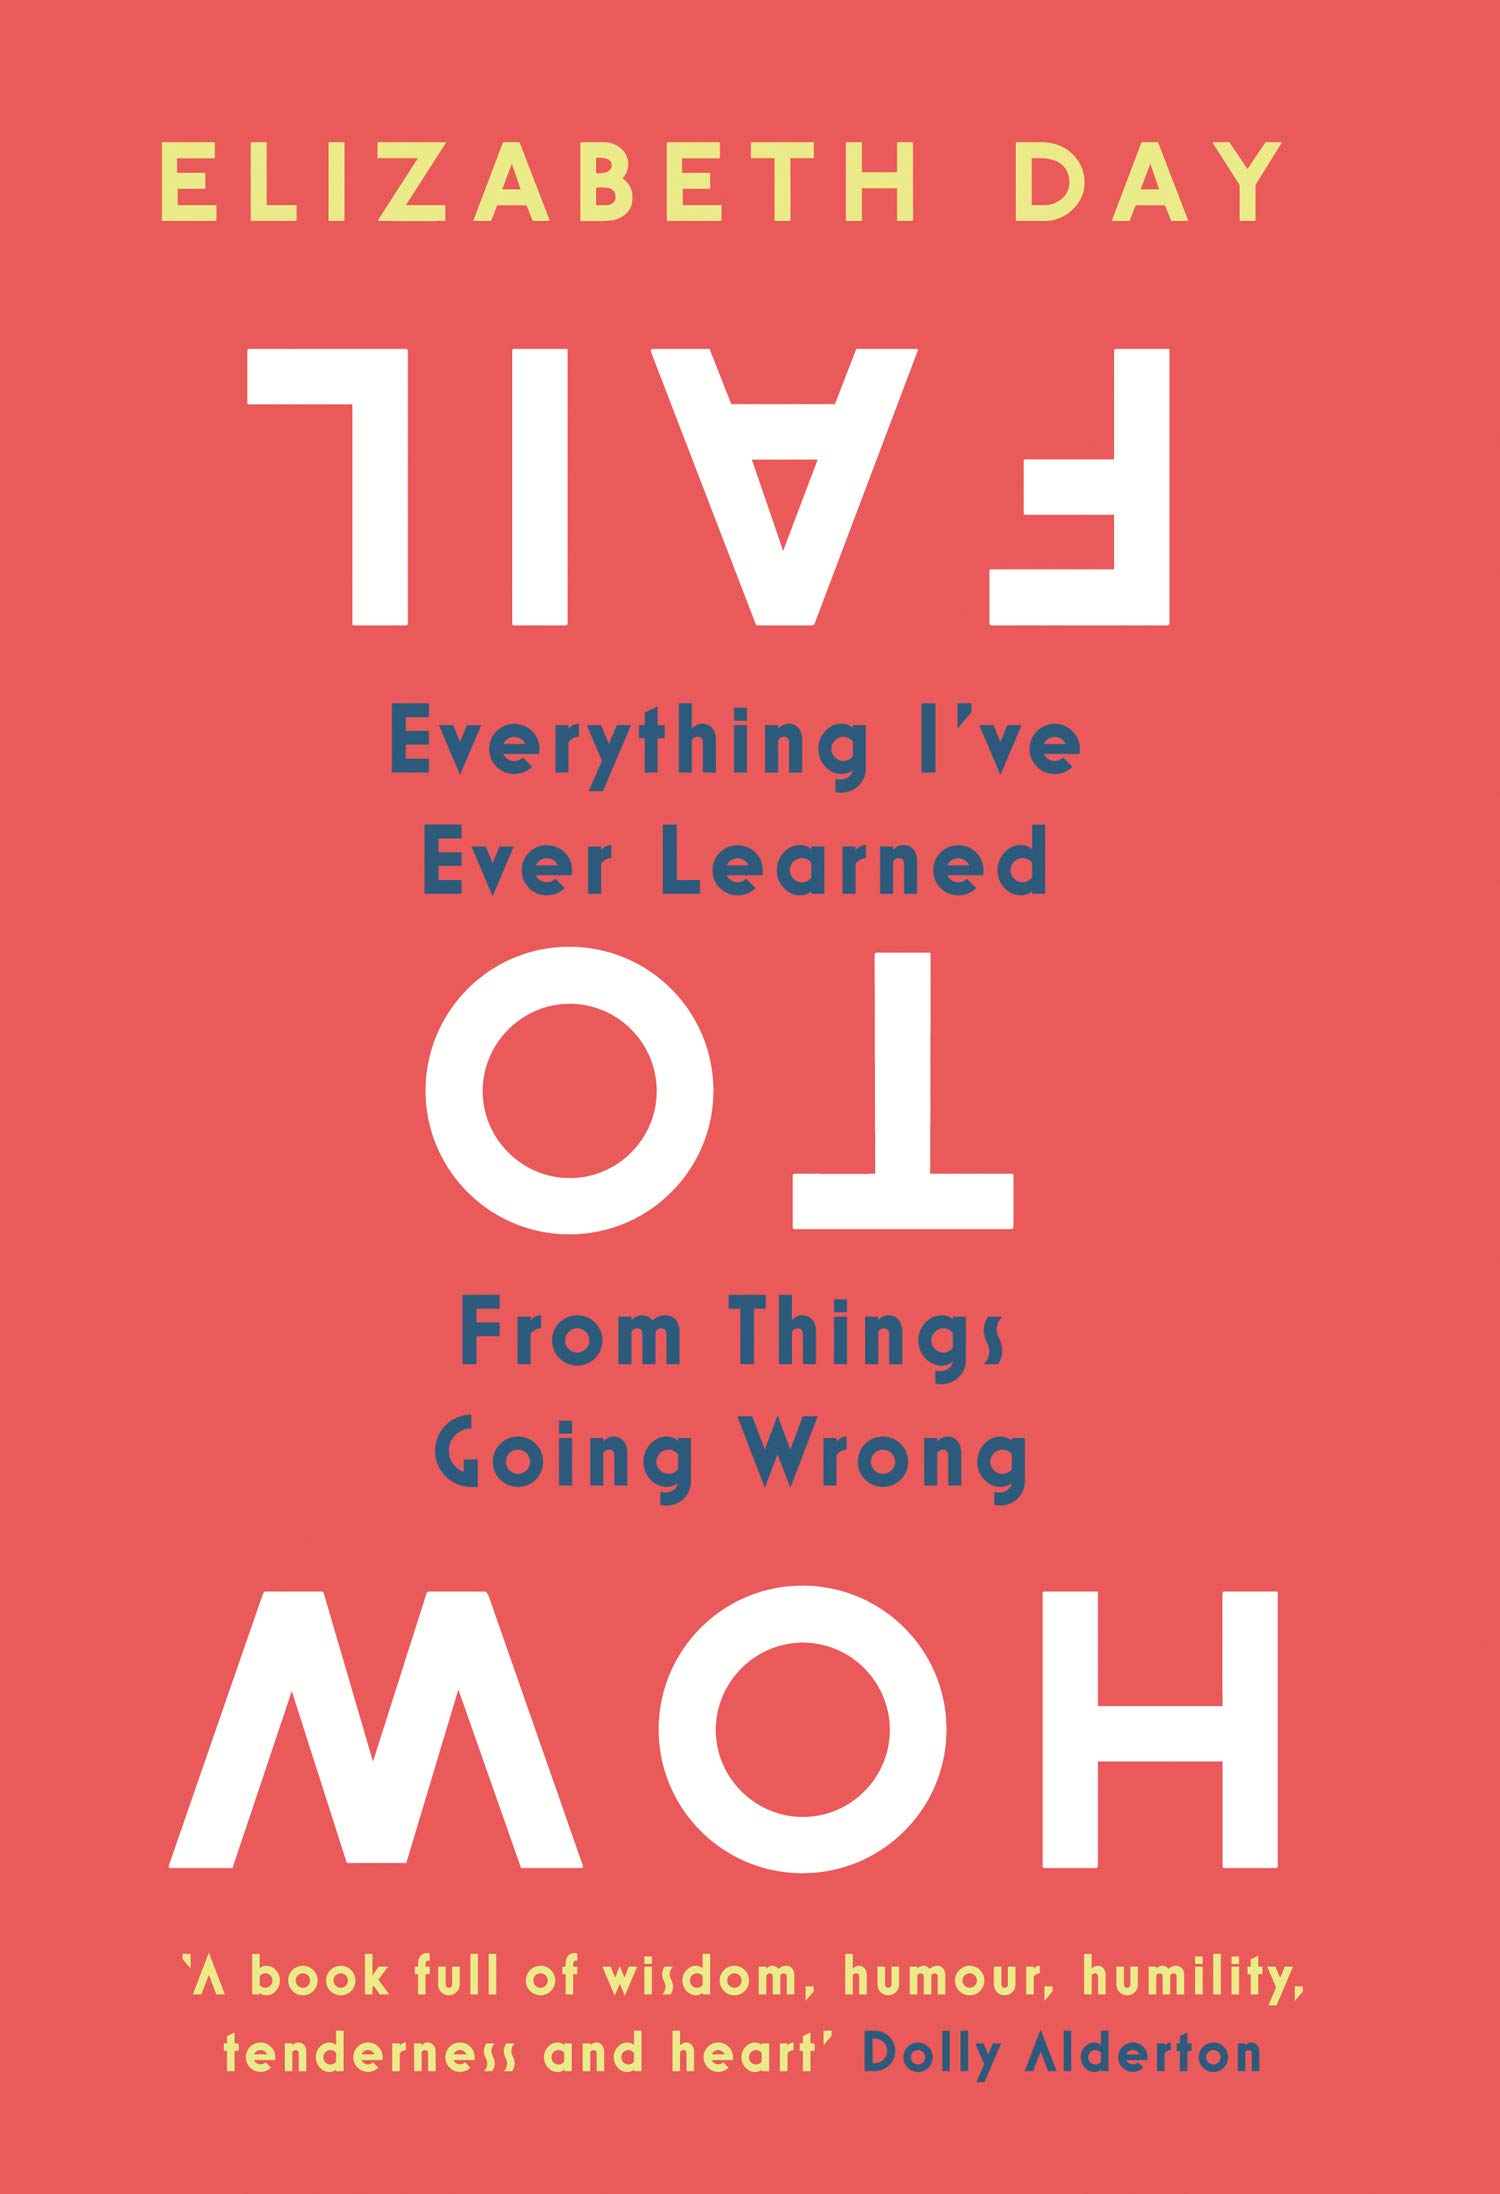 Image result for How to Fail: Everything I've Ever Learned From Things Going Wrong by Elizabeth Day